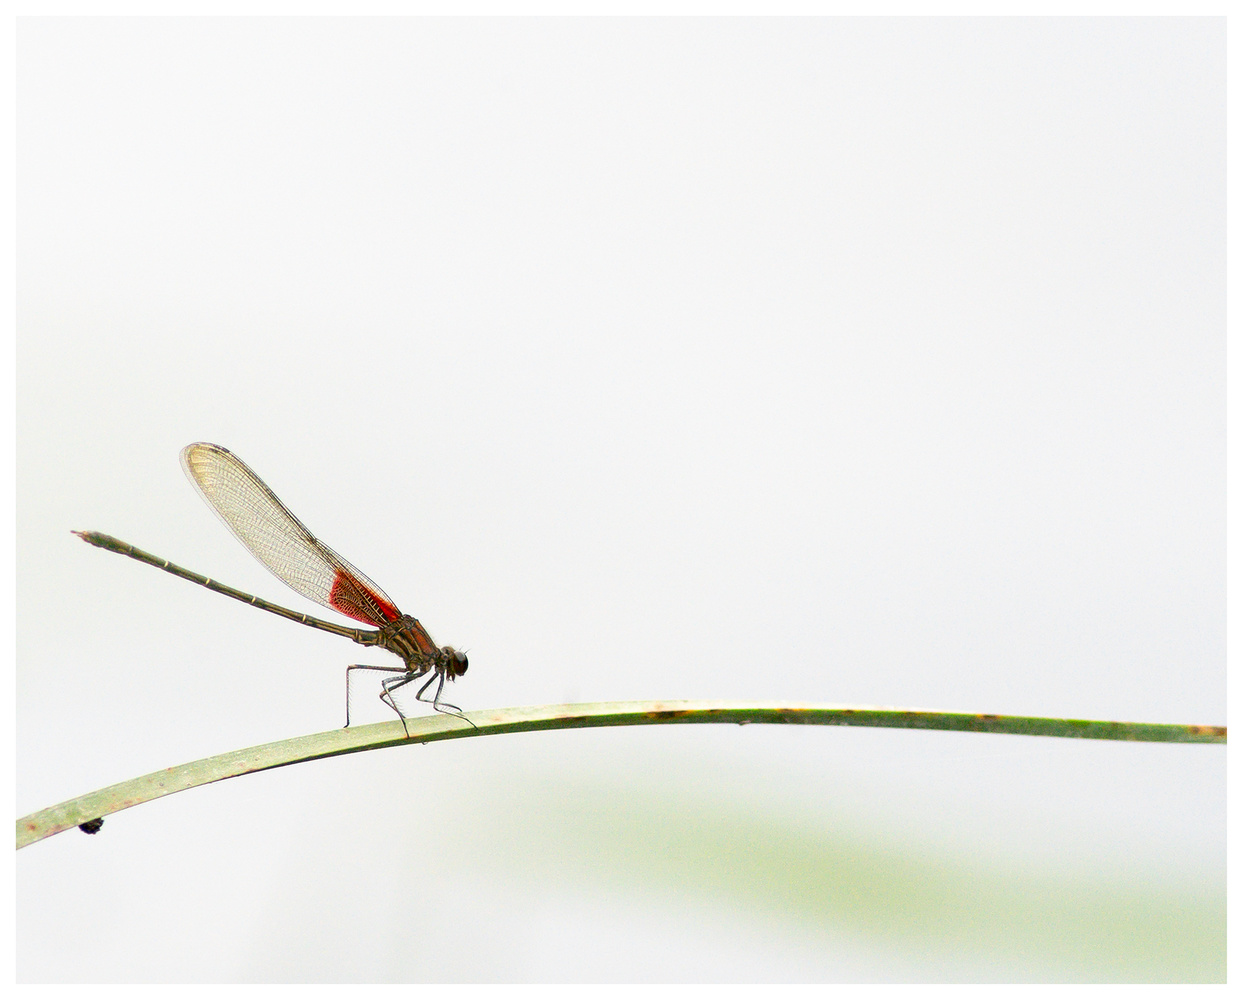 Dragonfly on grass by Danial McCoy